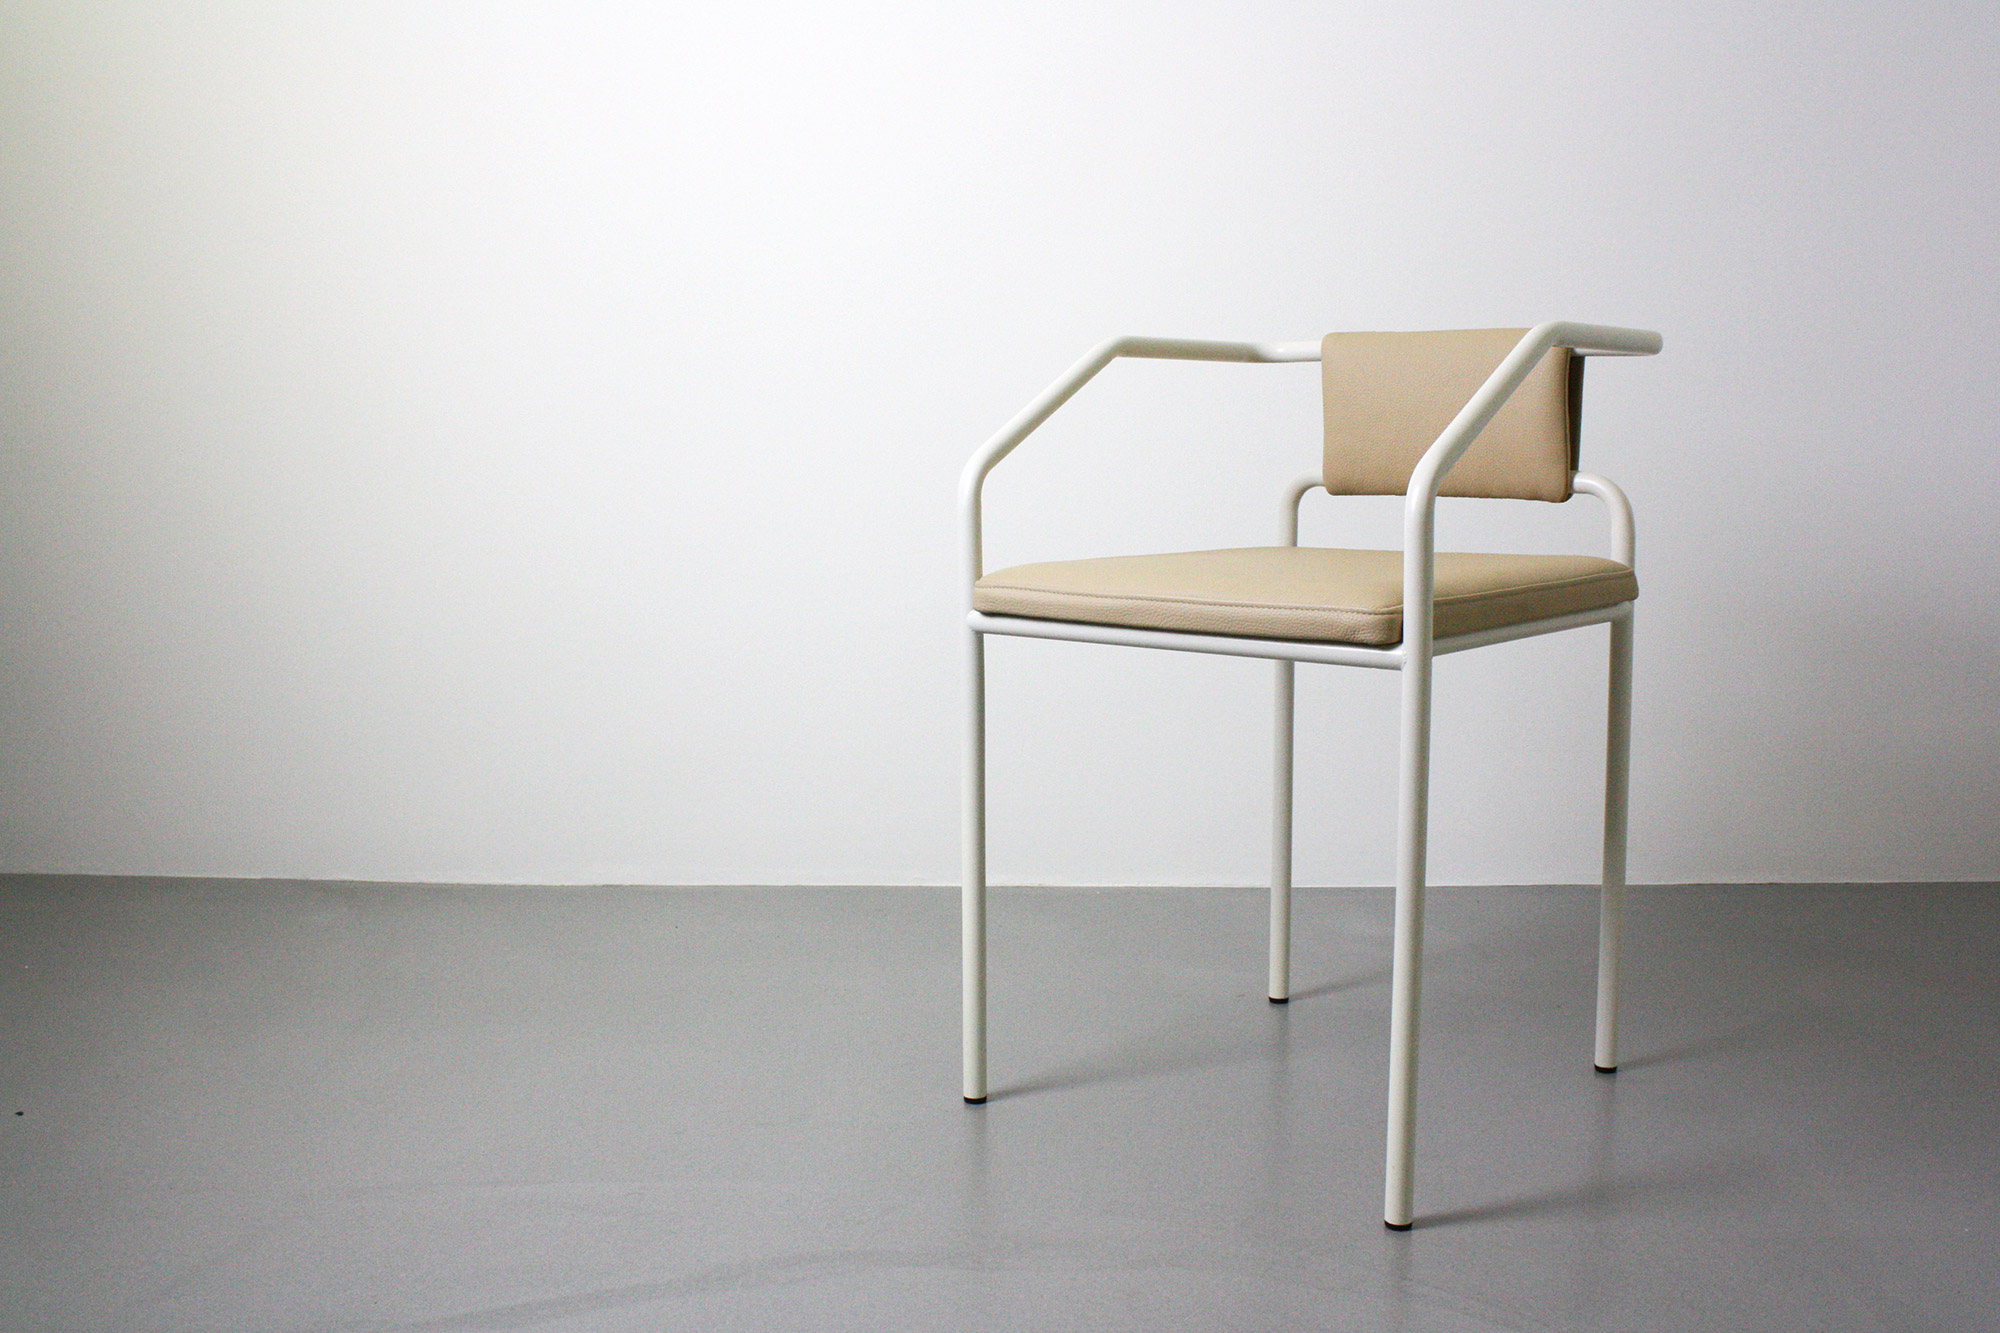 OBLIQUE - straight lines and neutral colours makes this piece a striking example of modern Danish furniture design.